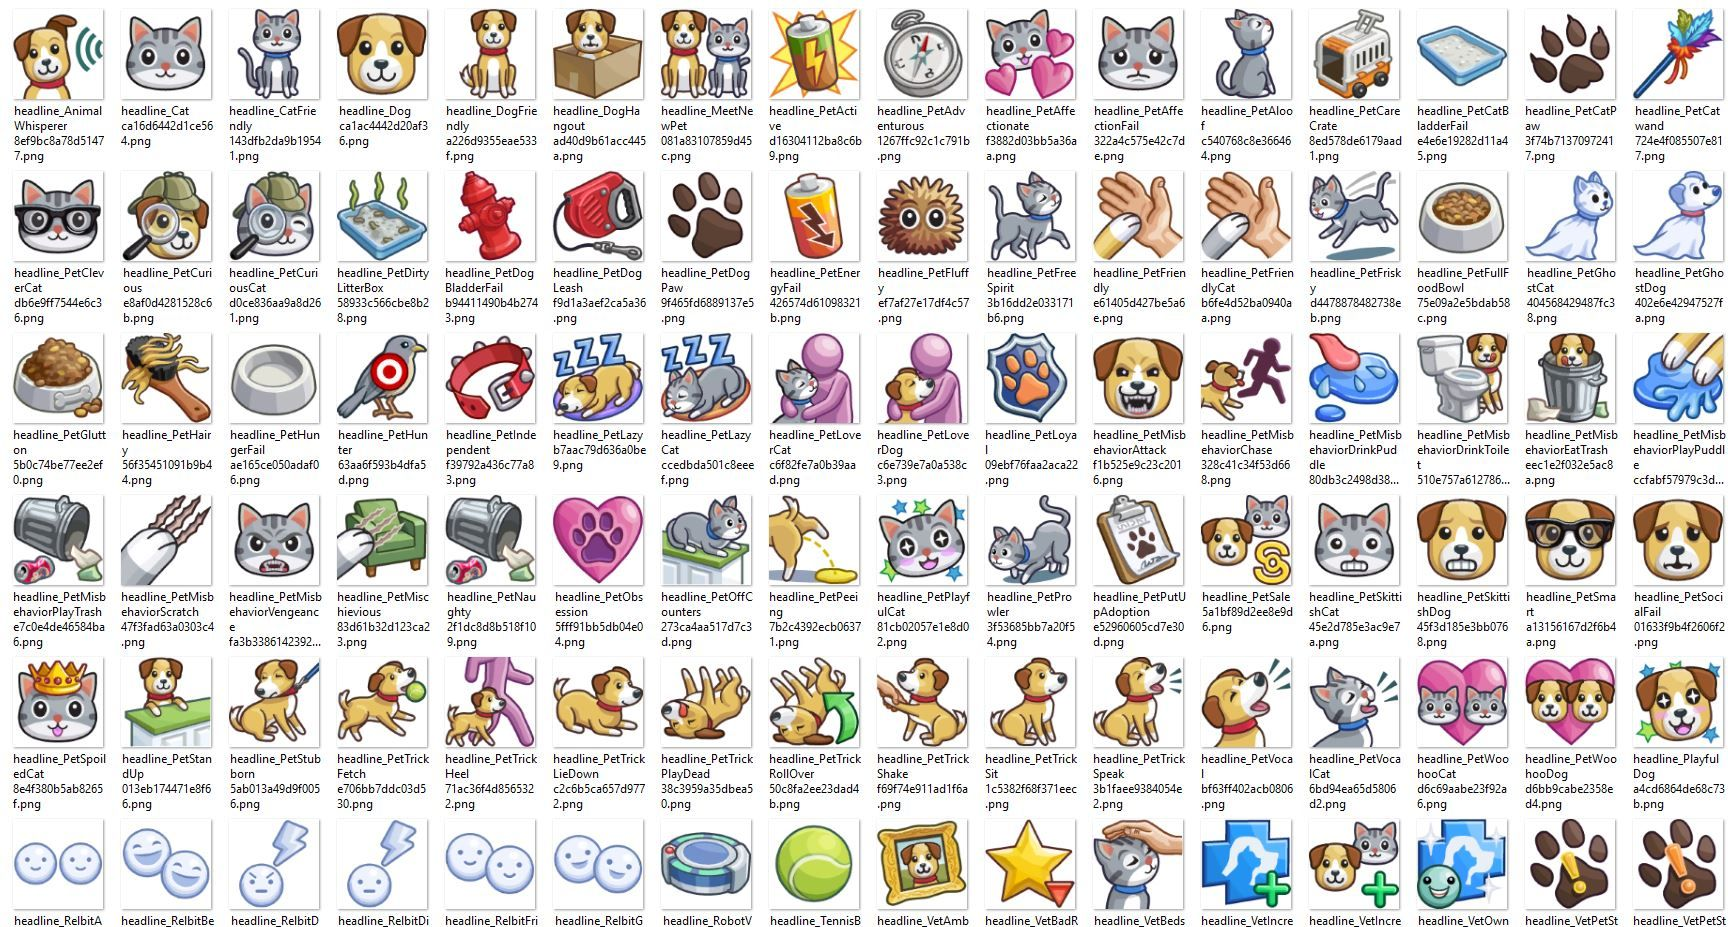 Download Icons From The Sims 4 Cats Dogs Sims 4 Sims 4 Collections Sims 4 Cc Eyes